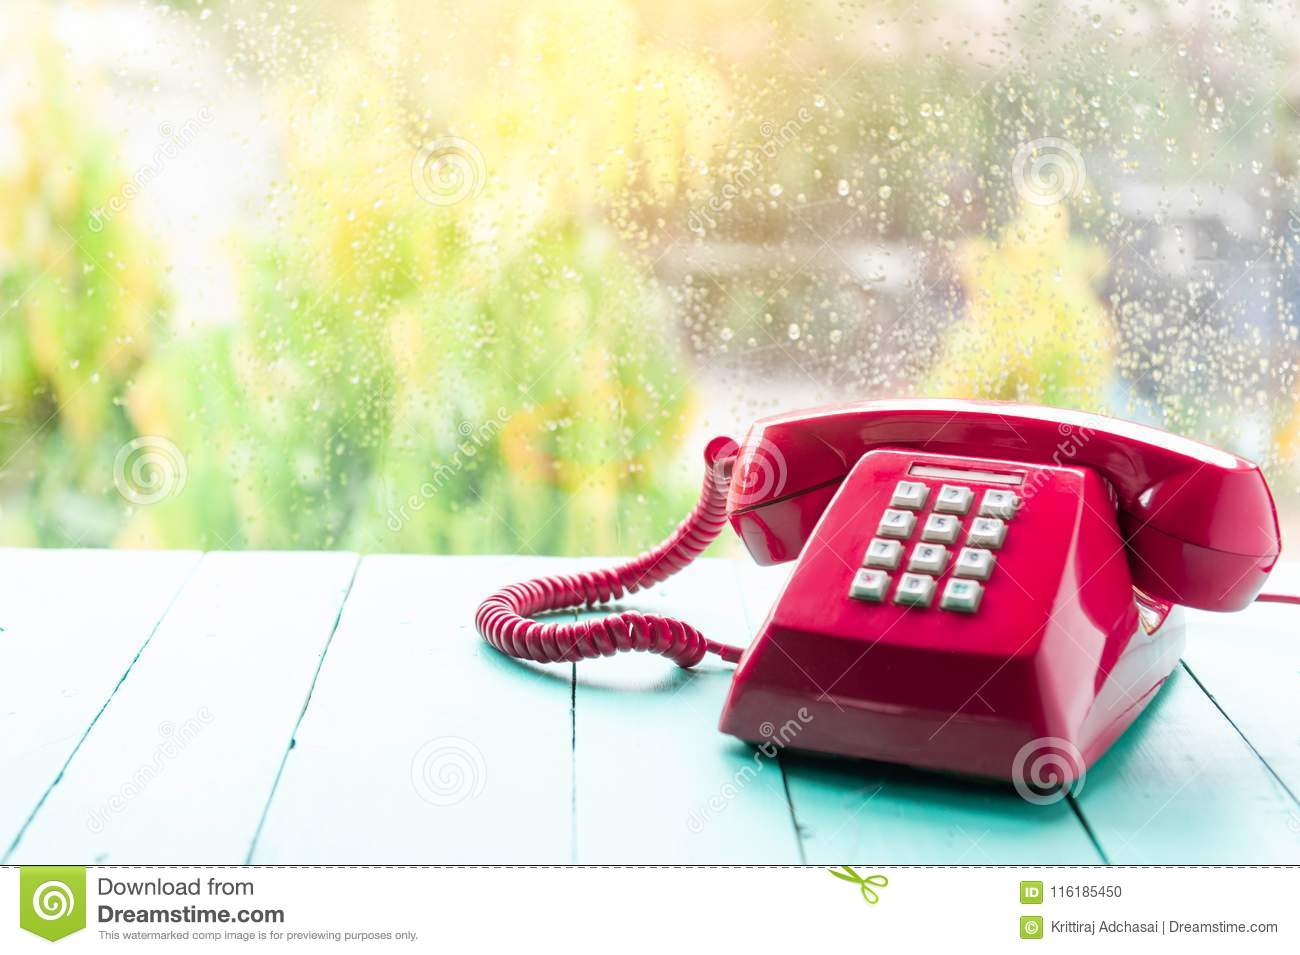 Classic pink telephone receiver